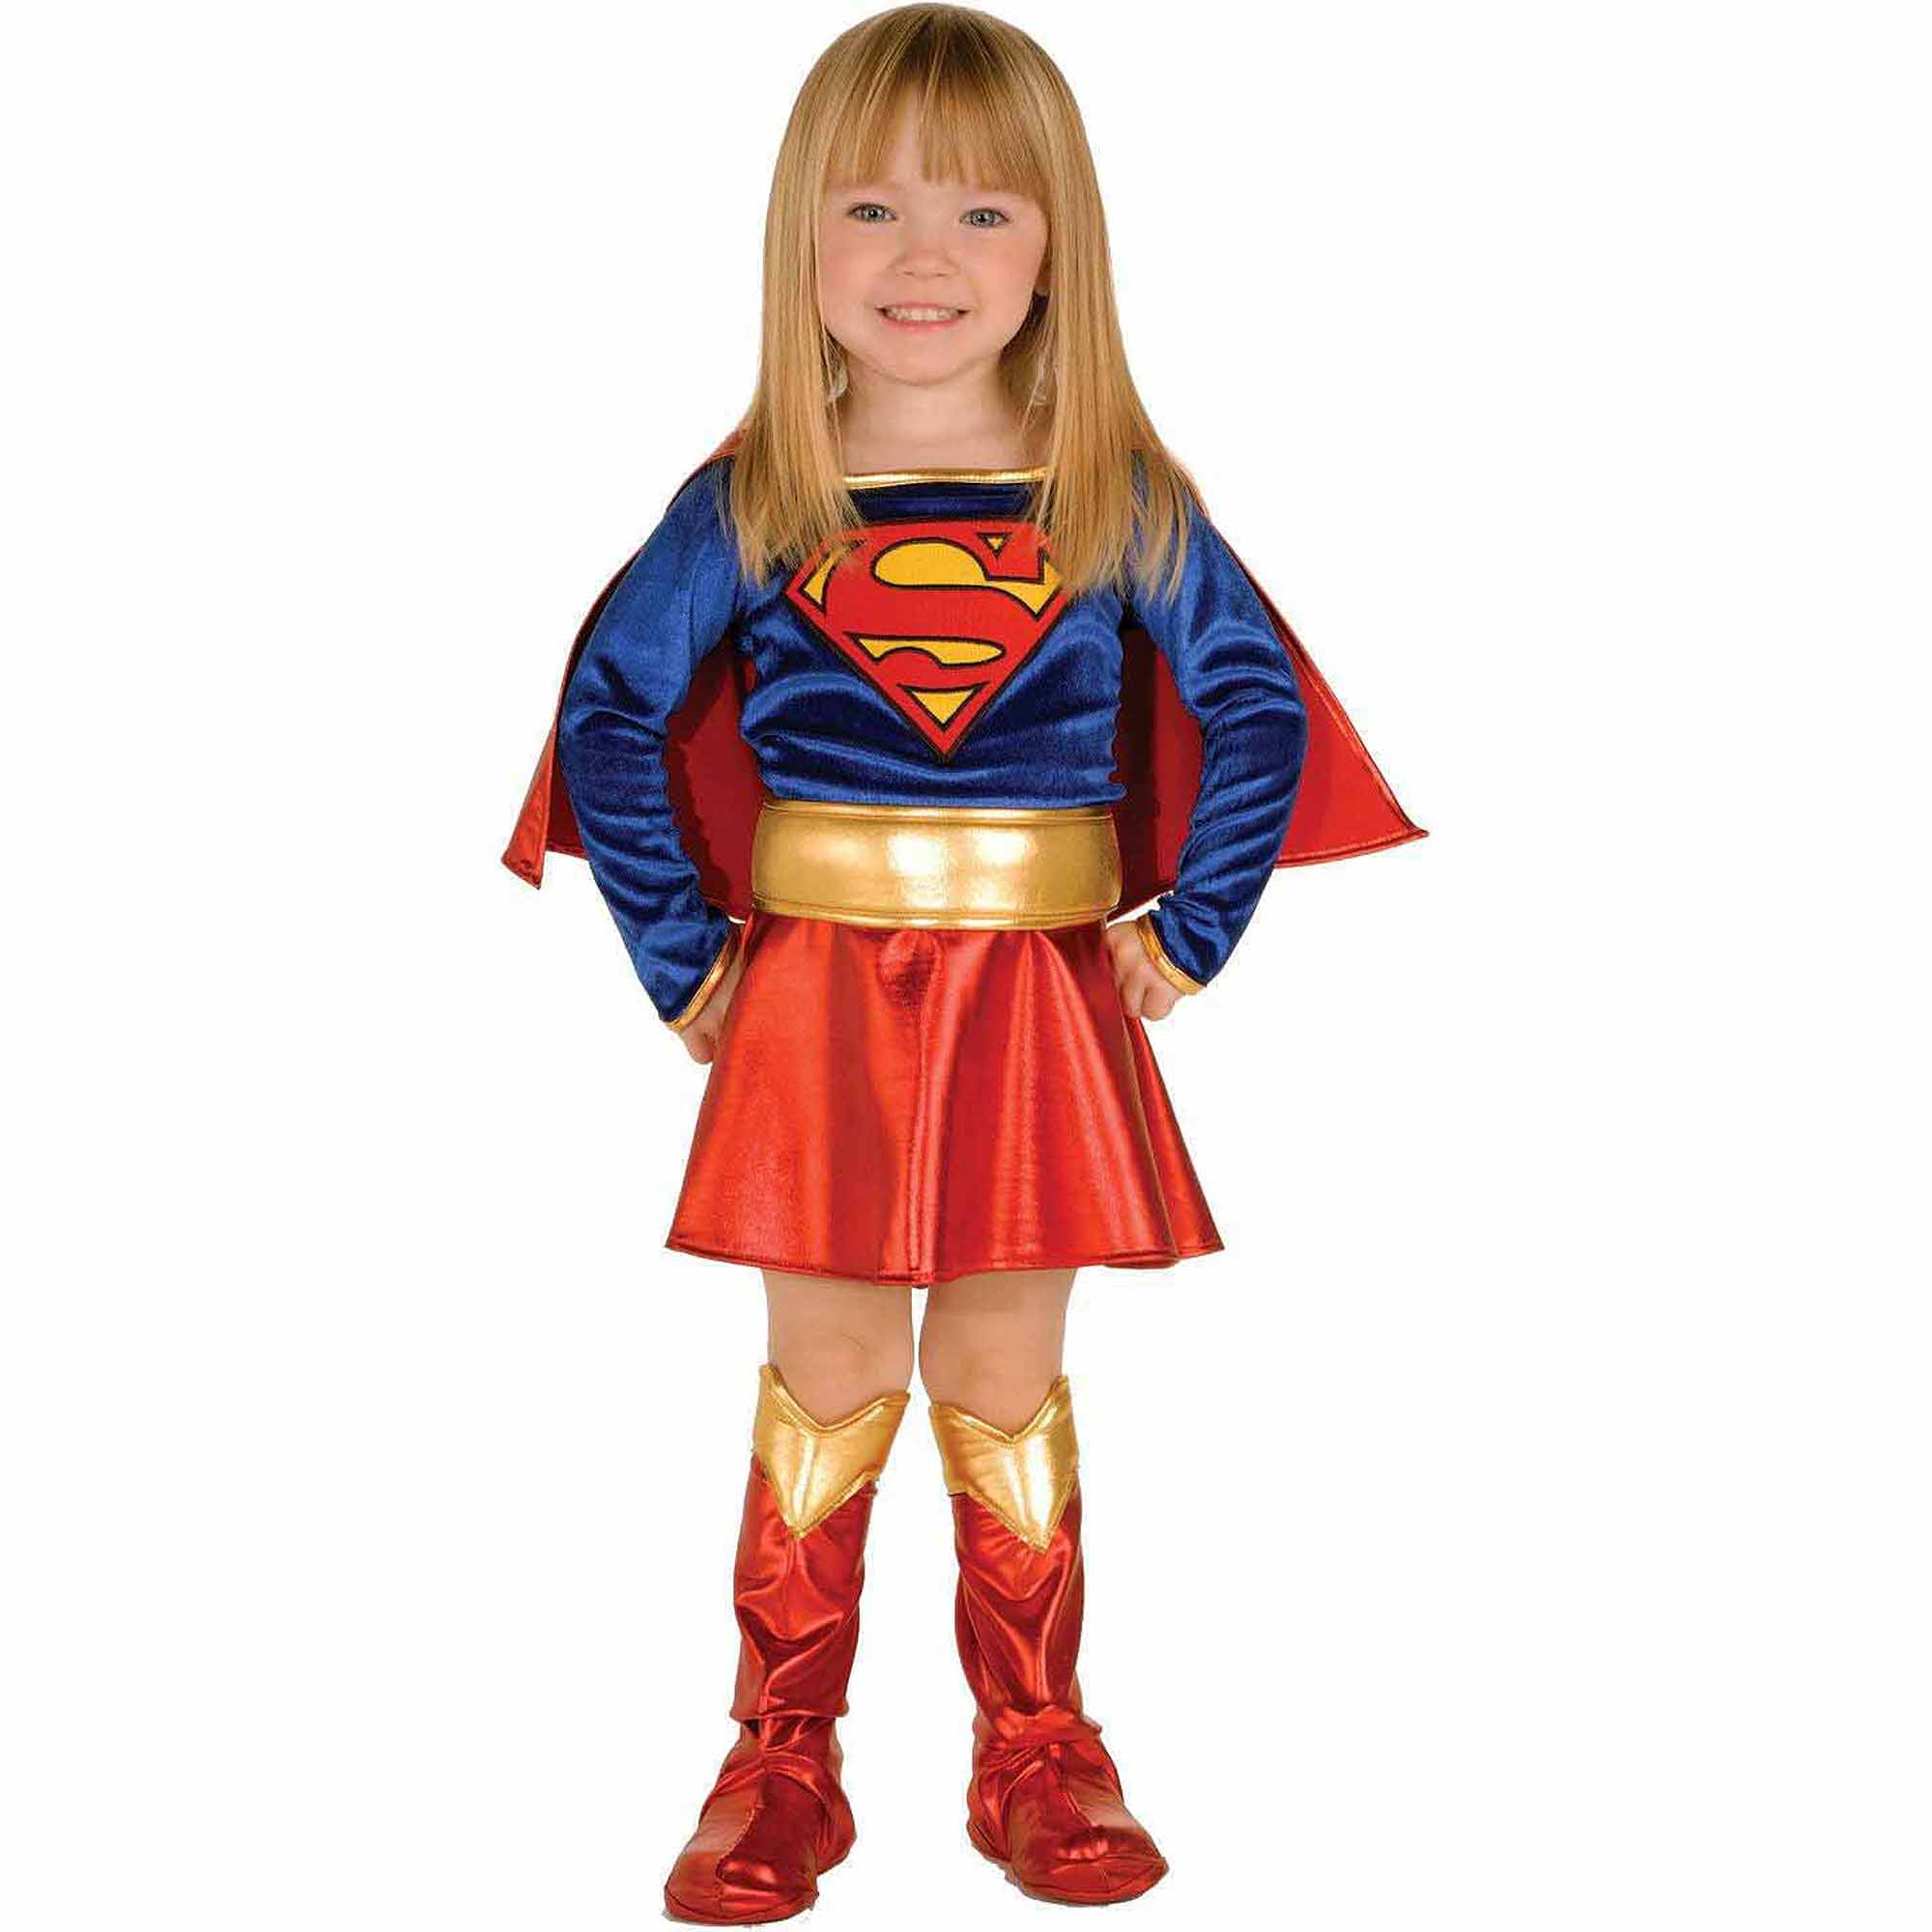 Supergirl Toddler Halloween Costume